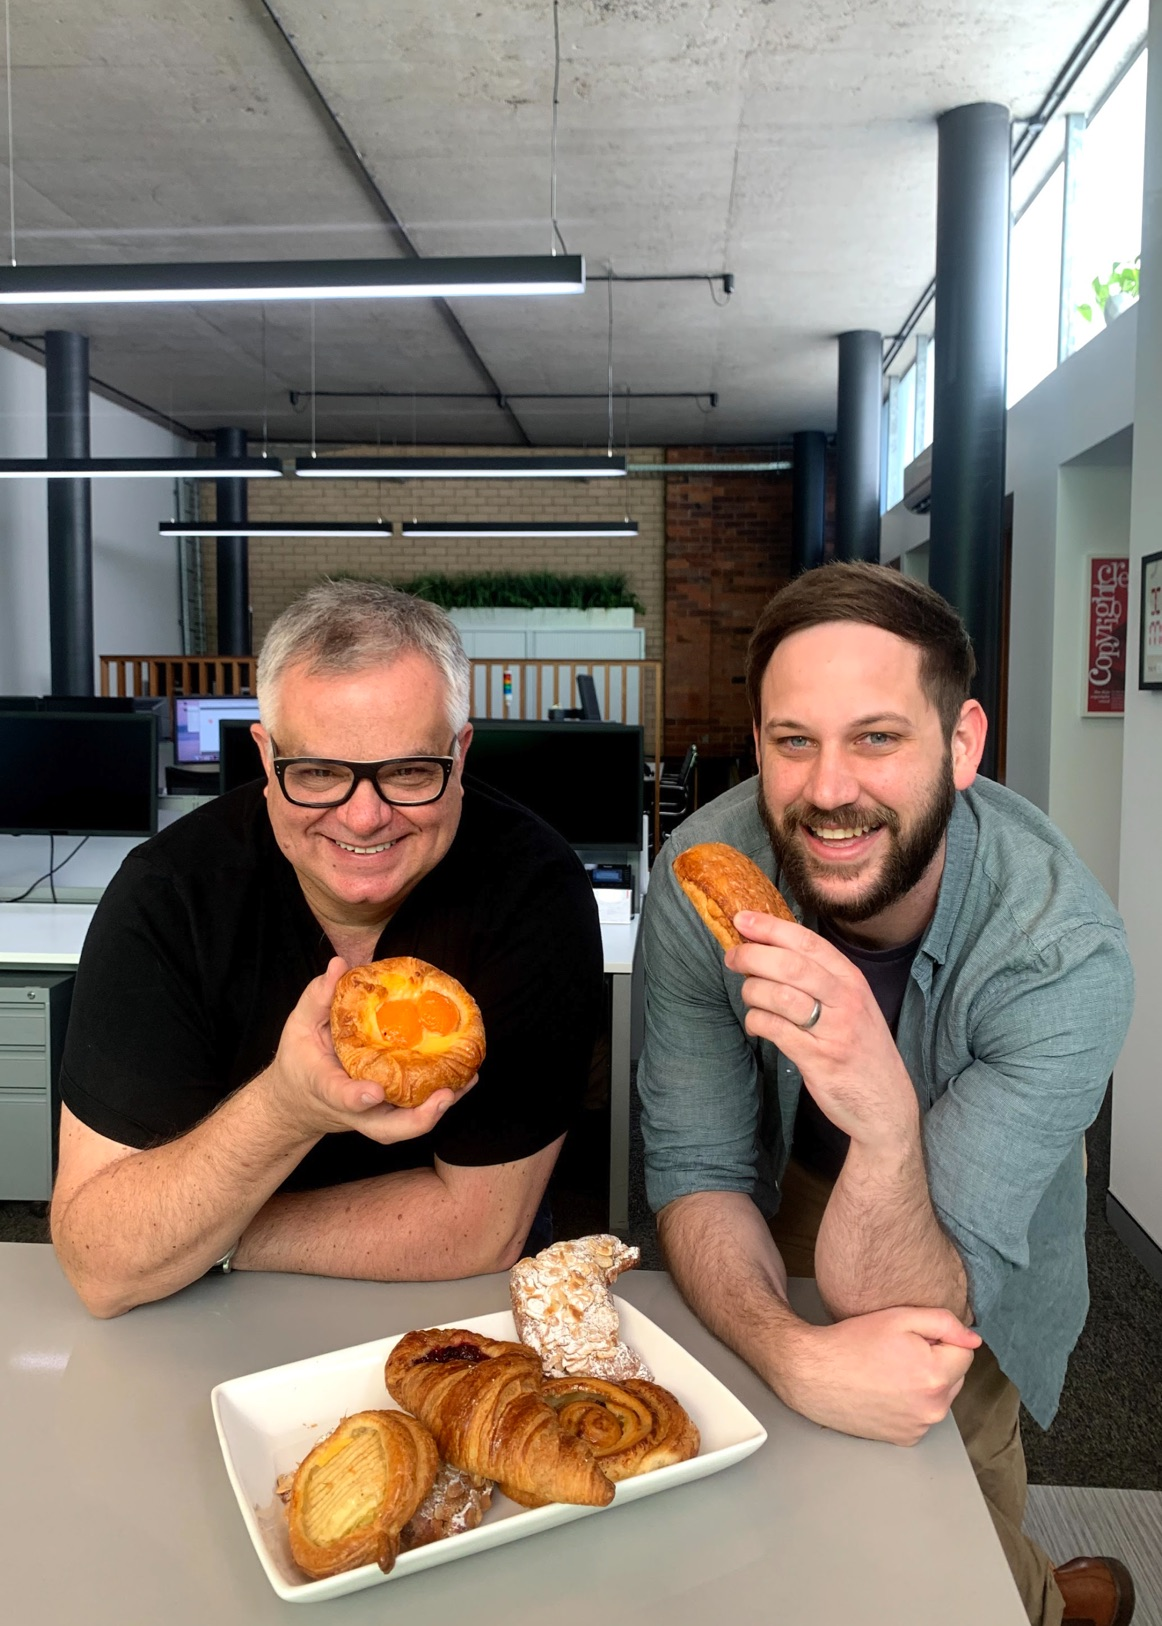 Jack and Jacob at DAIS enjoying some pastries together